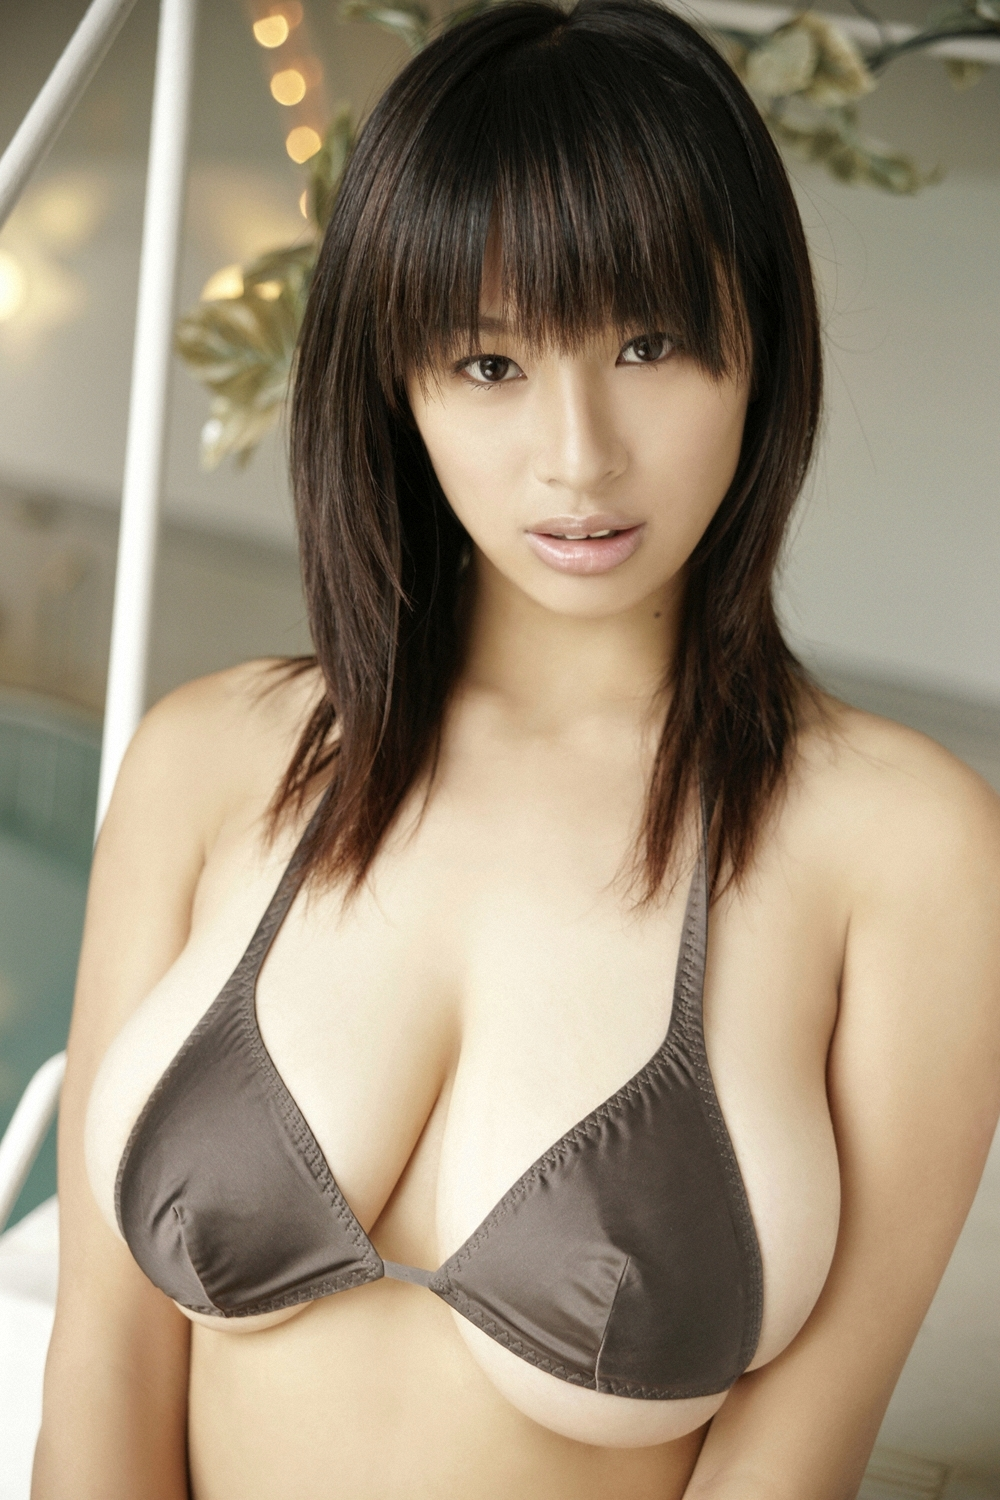 Busty Asian Girls With Their Big Boobs On Display Photo -5621